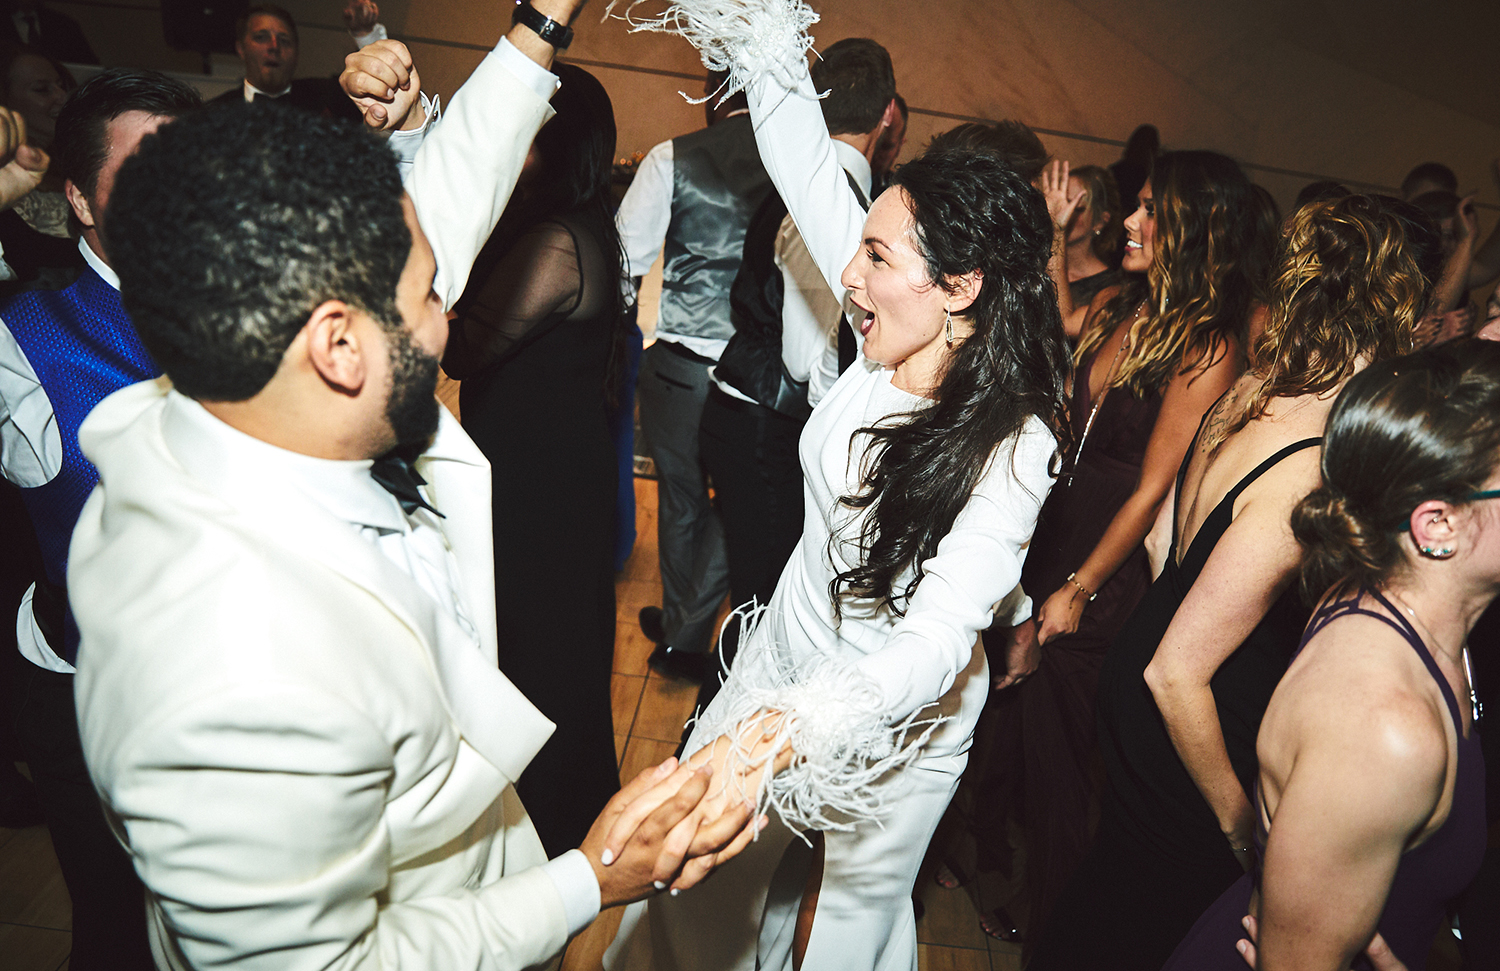 170930_WilliamValeWeddingPhotography_BrooklynWeddingPhotographer_By_BriJohnsonWeddings_0168.jpg